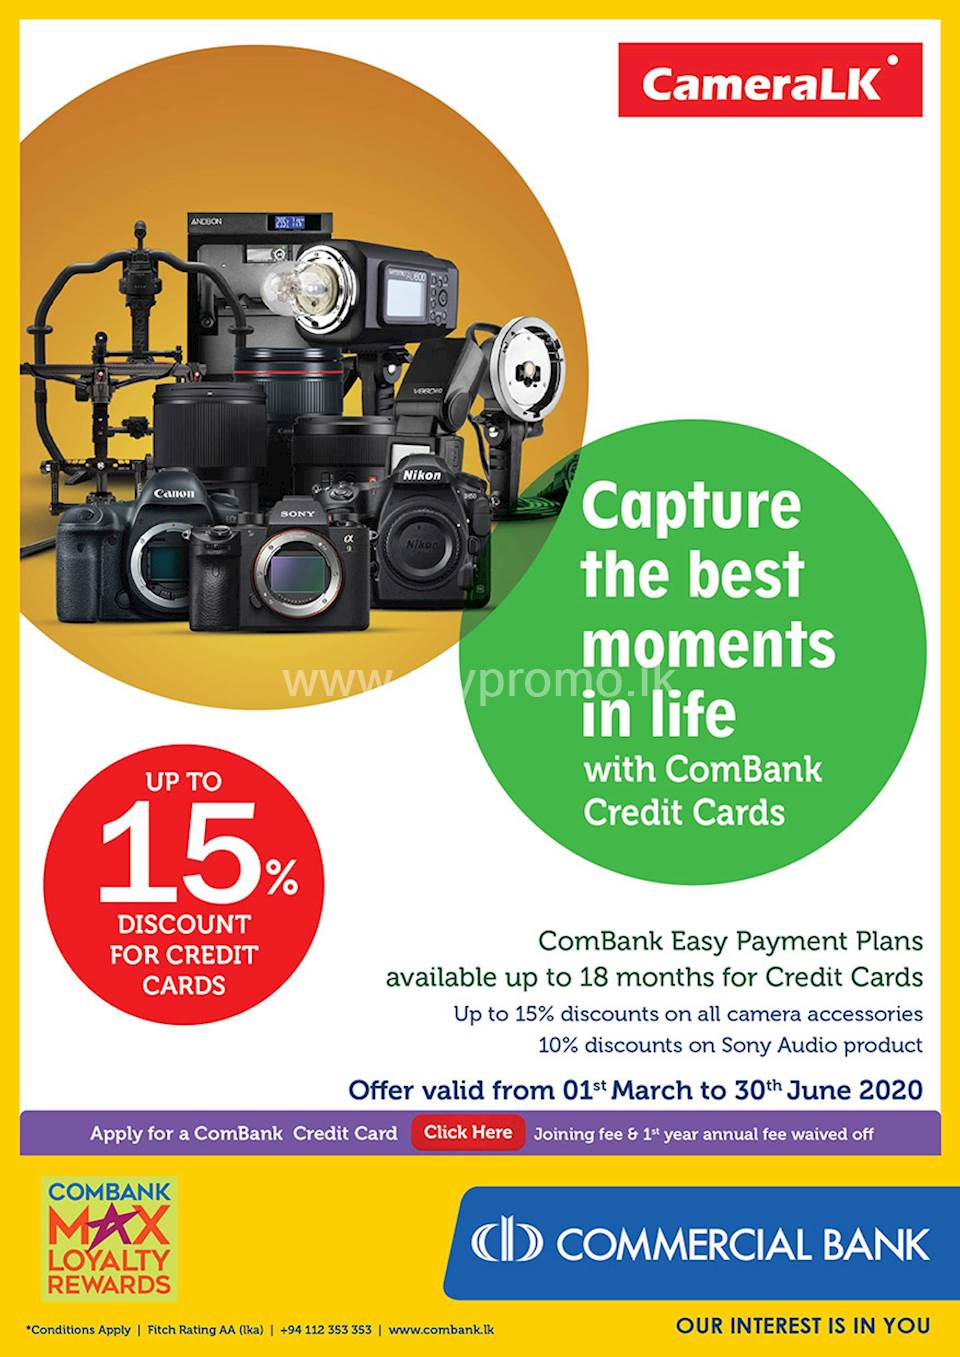 Get Up To 15% Off at CameraLK with ComBank Credit Cards